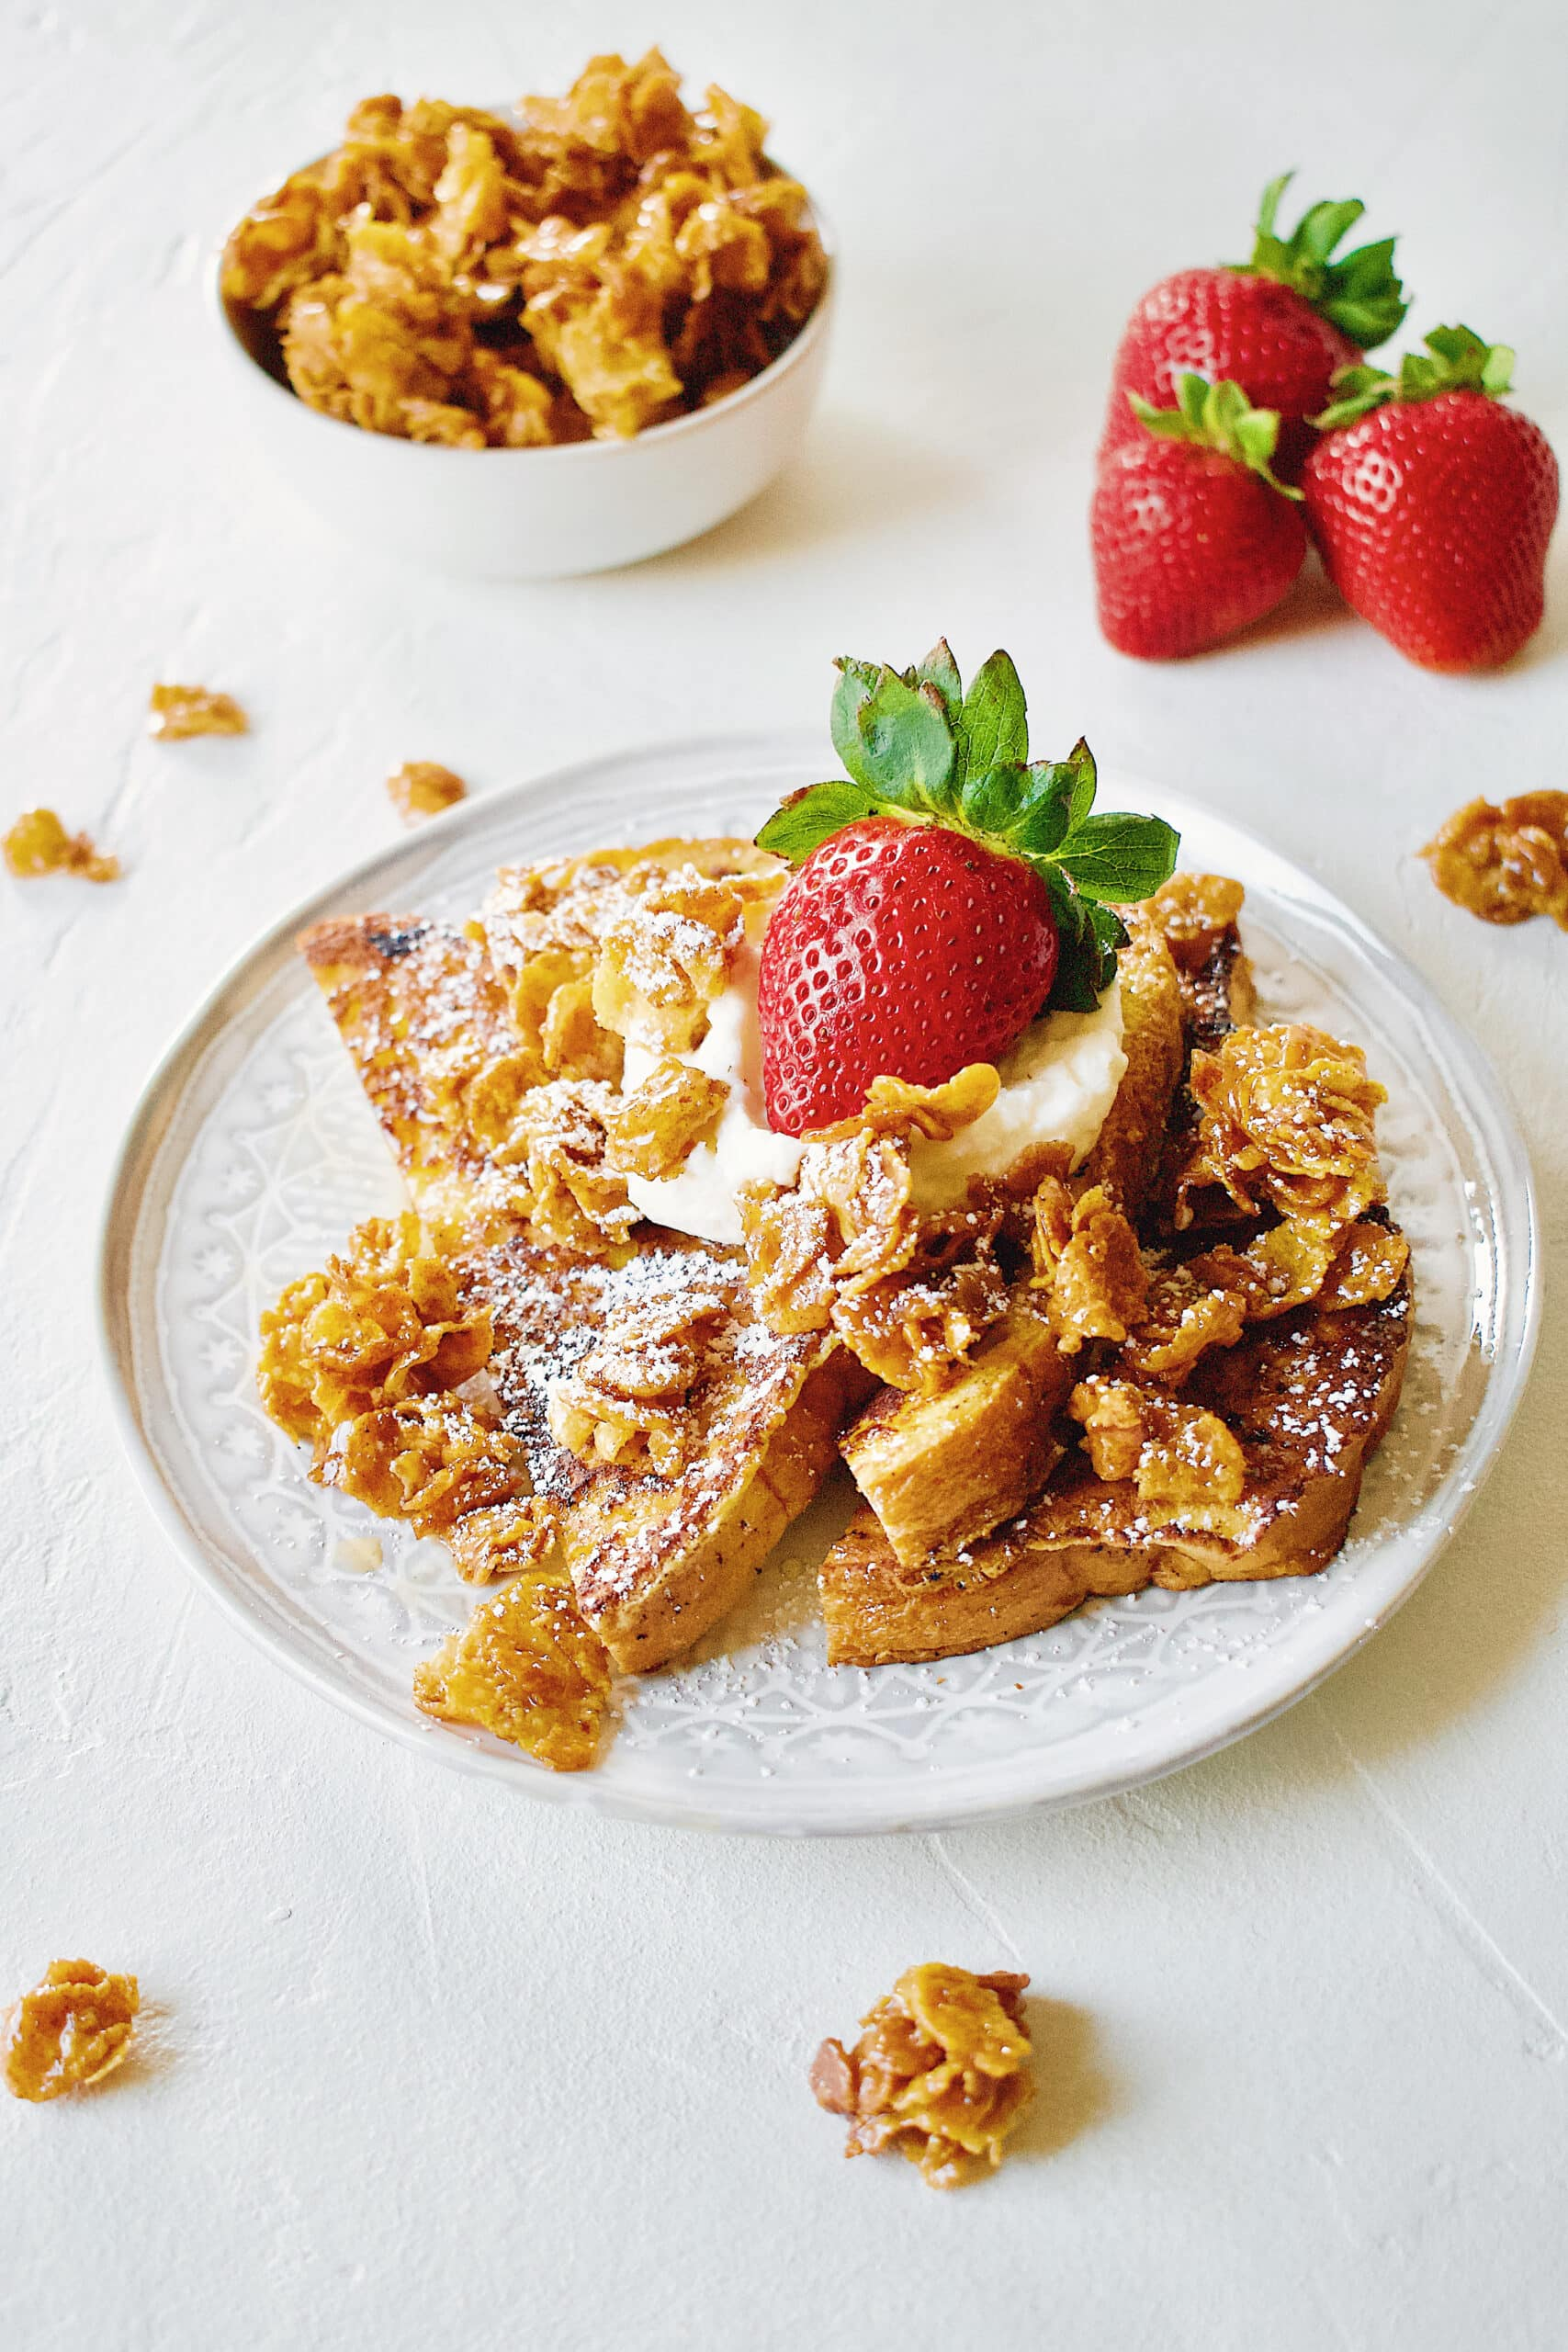 French Toast Crunch from Joanna Gaines Magnolia Table Cookbook Volume 2, made at home by KendellKreations